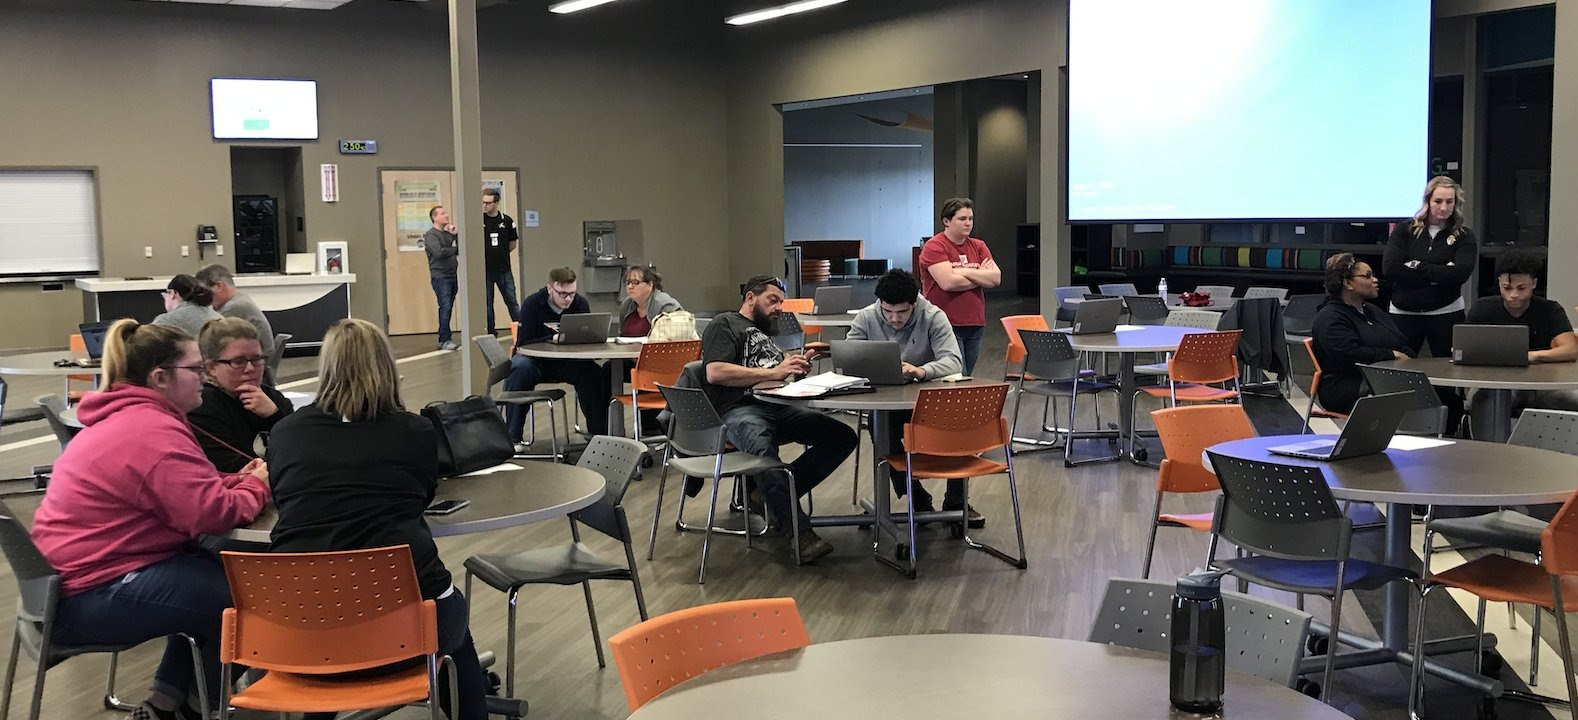 Students sit with their parents at round tables in a room, and look at laptops and papers, with some staff people standing and watching.